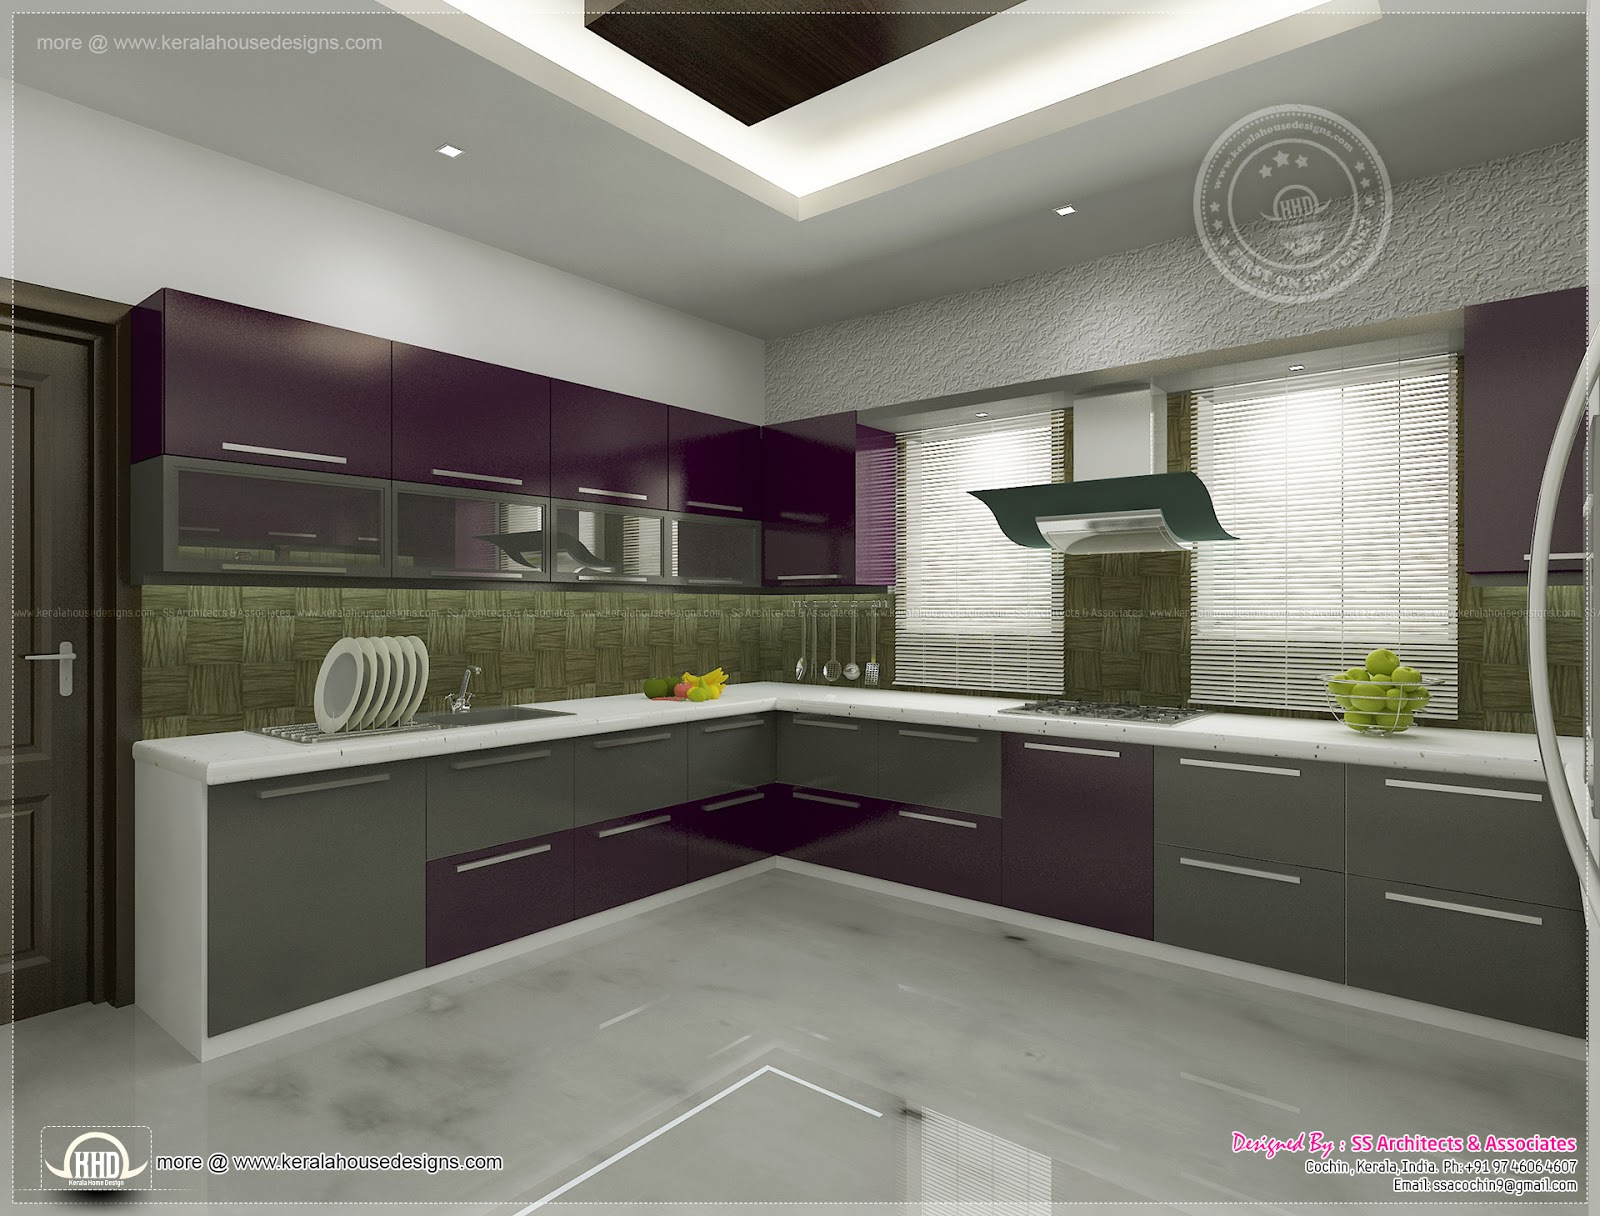 Kitchen interior views by ss architects cochin kerala for The best interior designs of homes